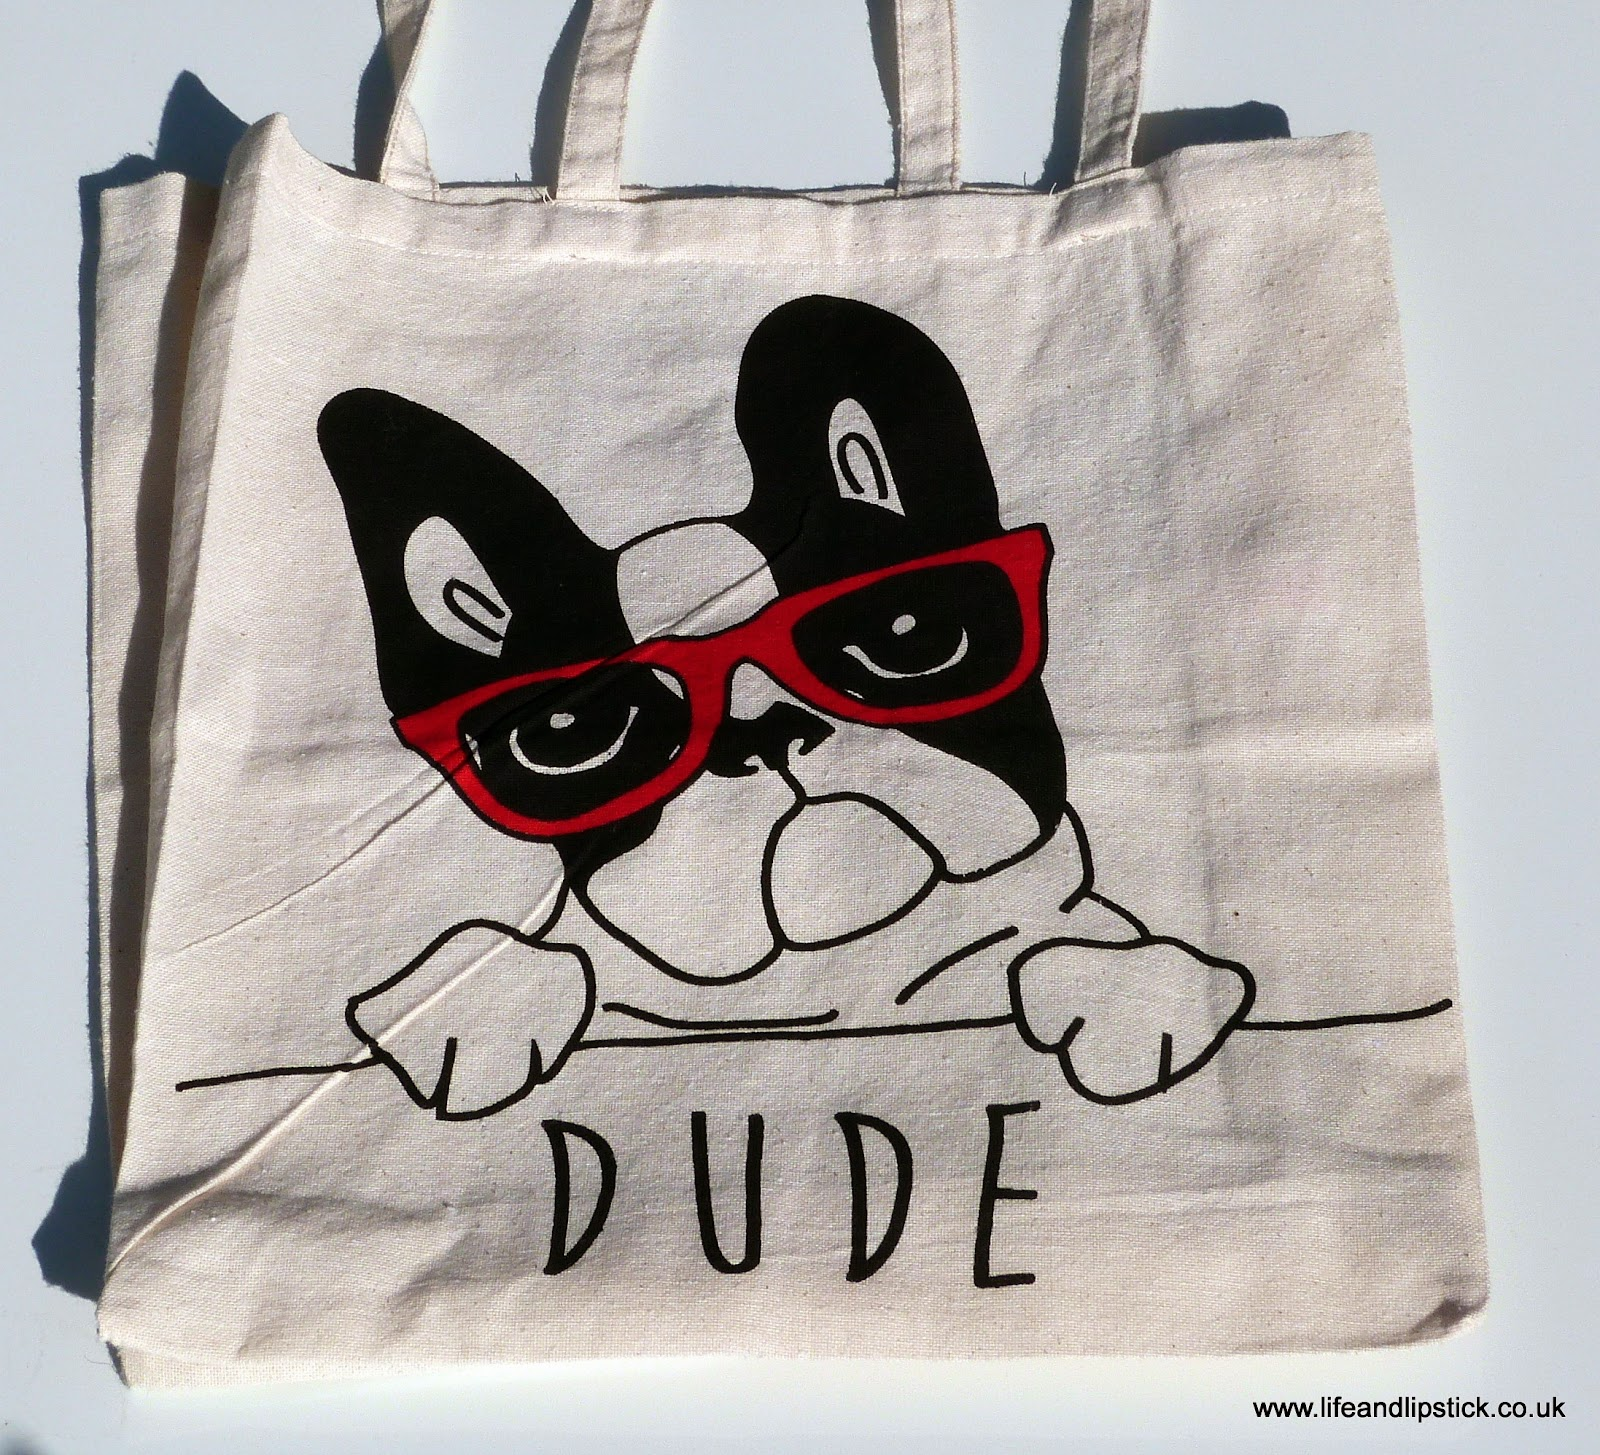 Primark Cotton Tote Bag